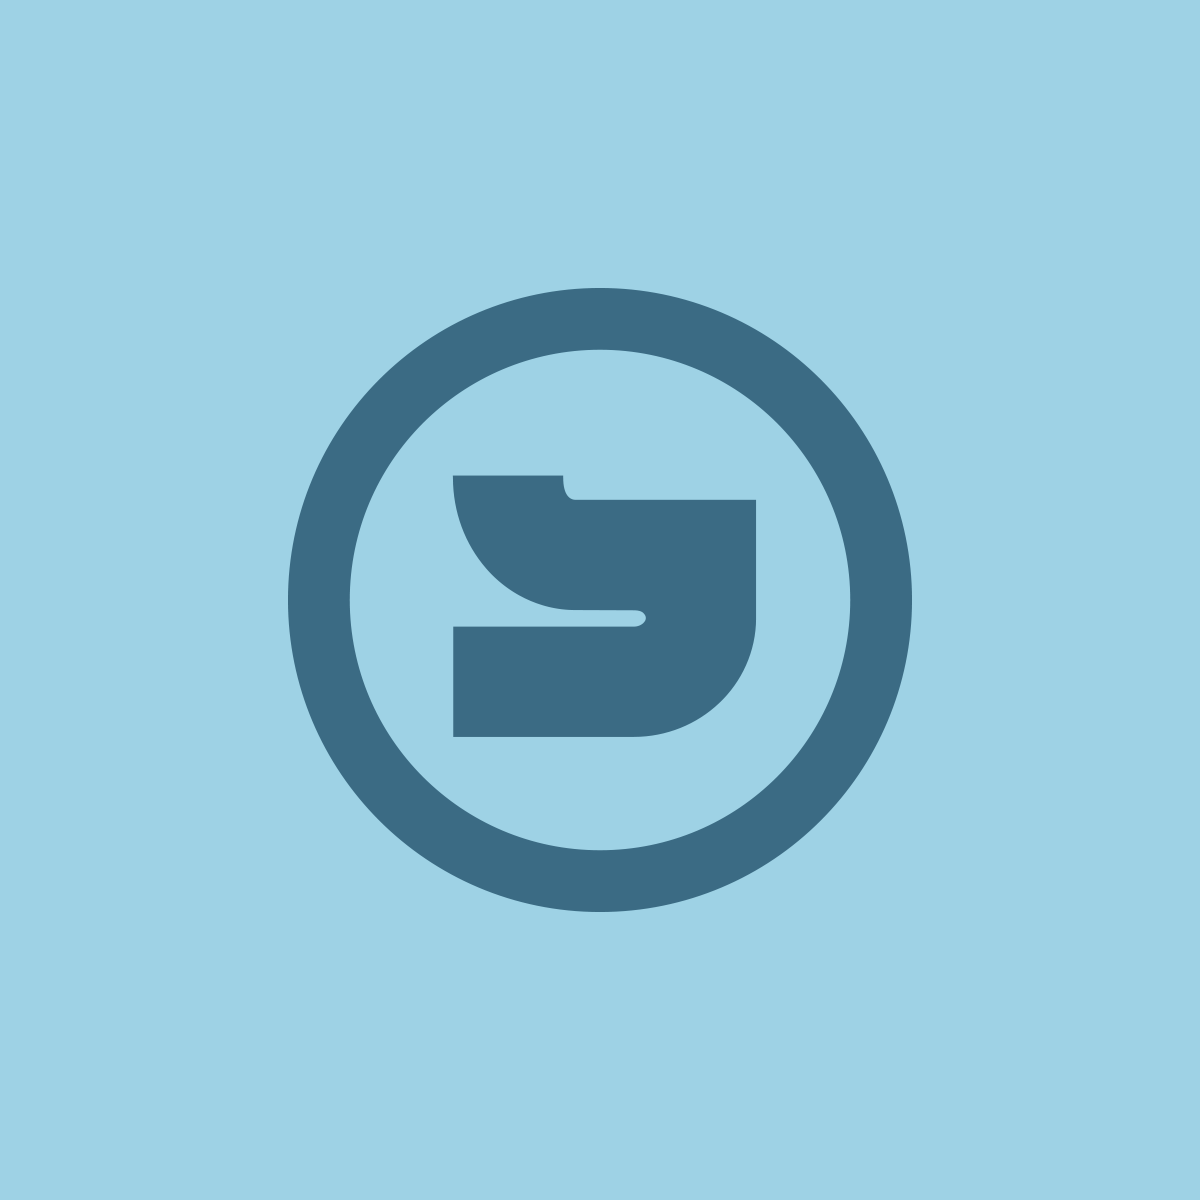 HIIT - Part 3 Interval Training